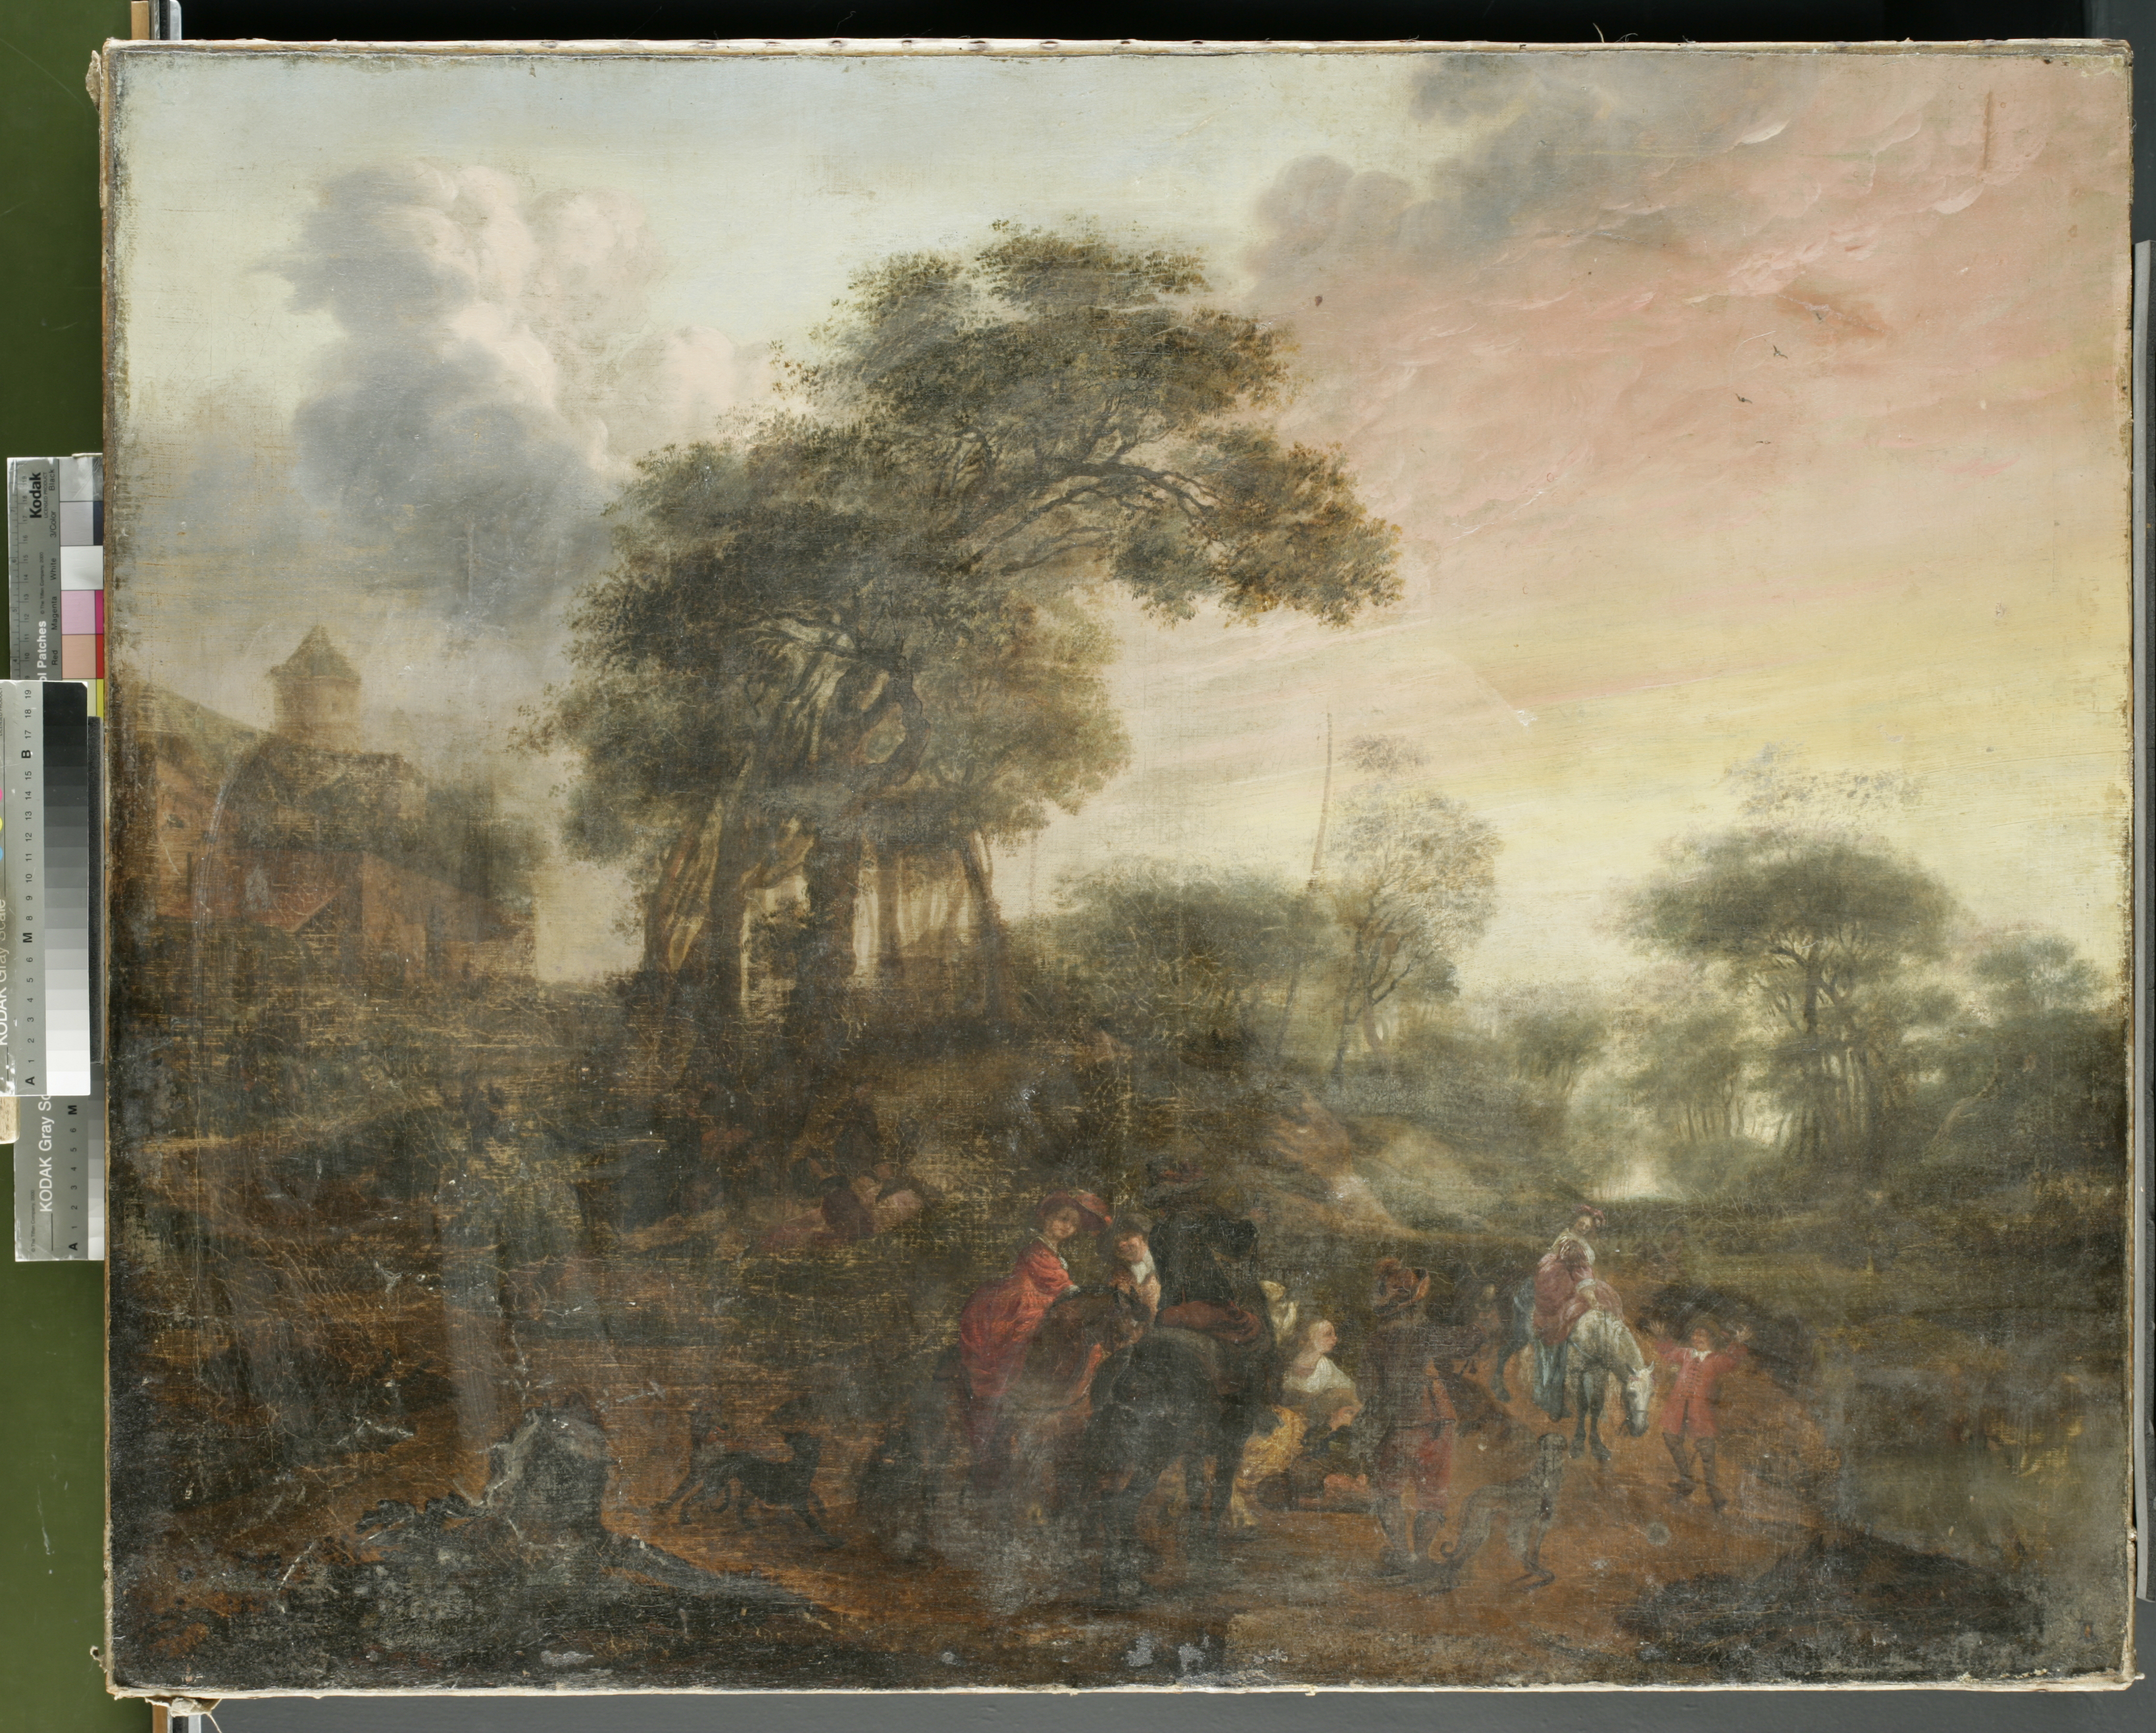 Figure 1: Landscape with Figures, whole front, before treatment (©Titmus)